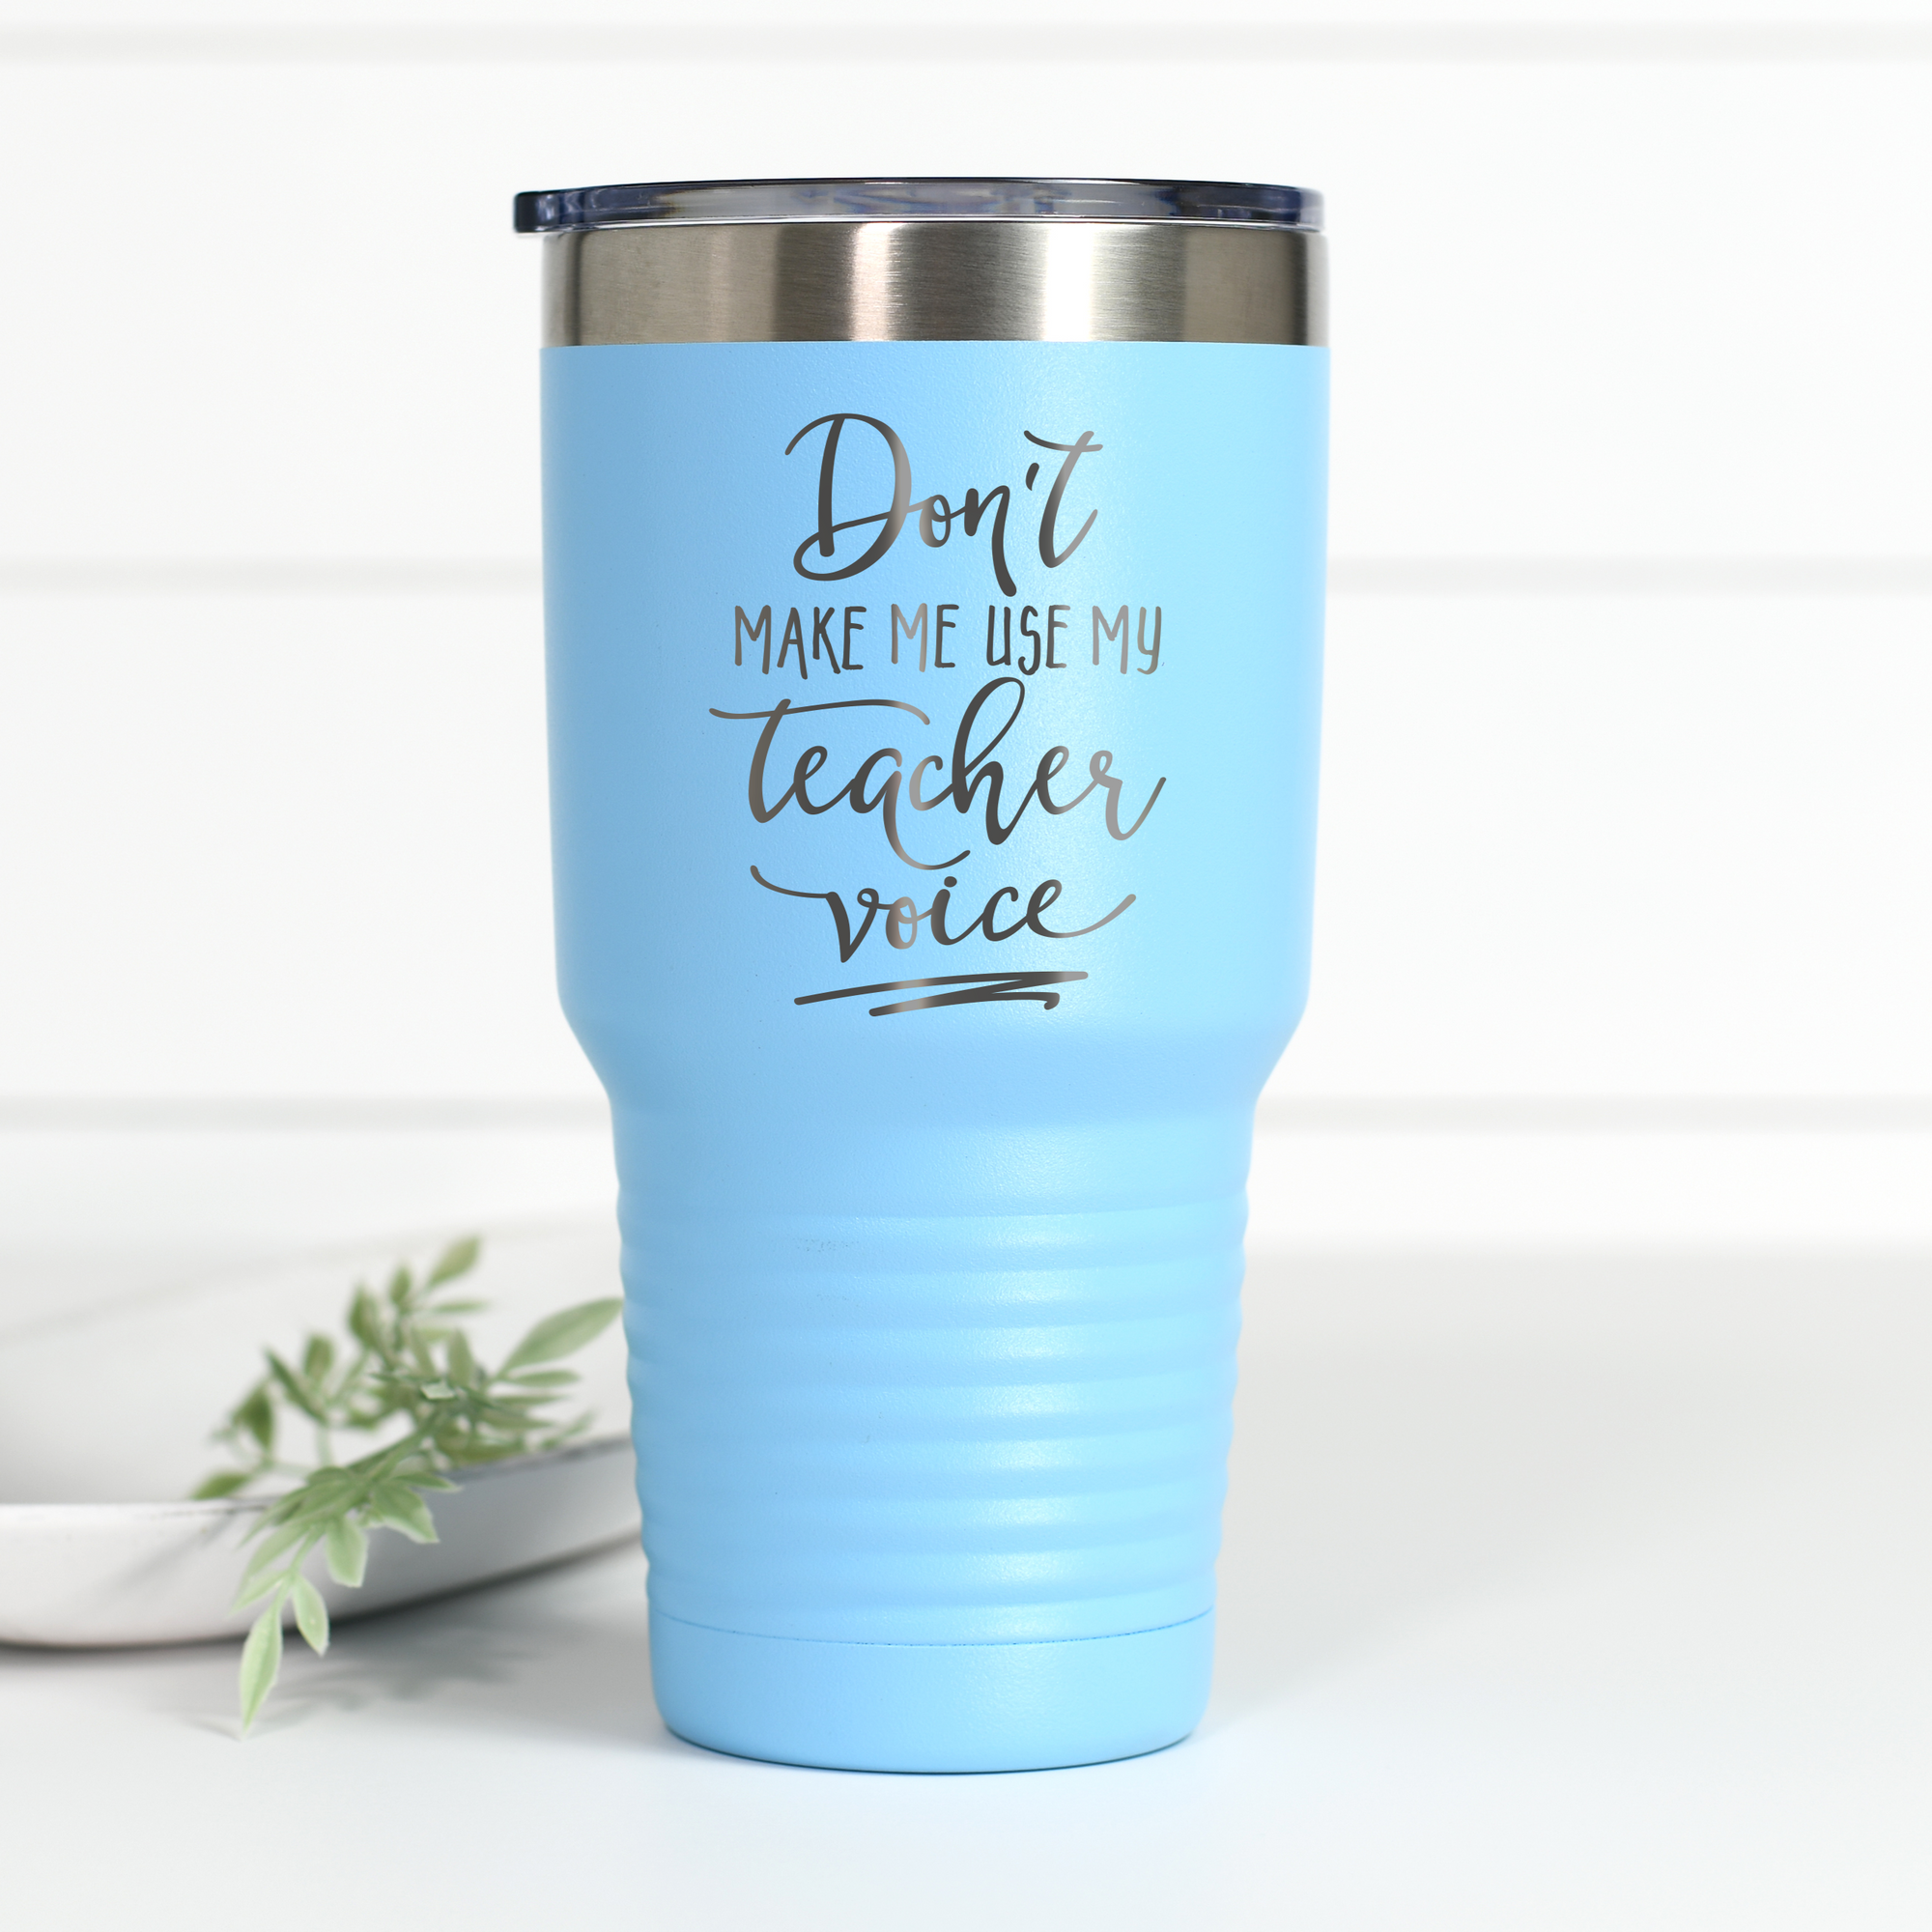 Teacher Voice 30 oz Engraved Tumbler